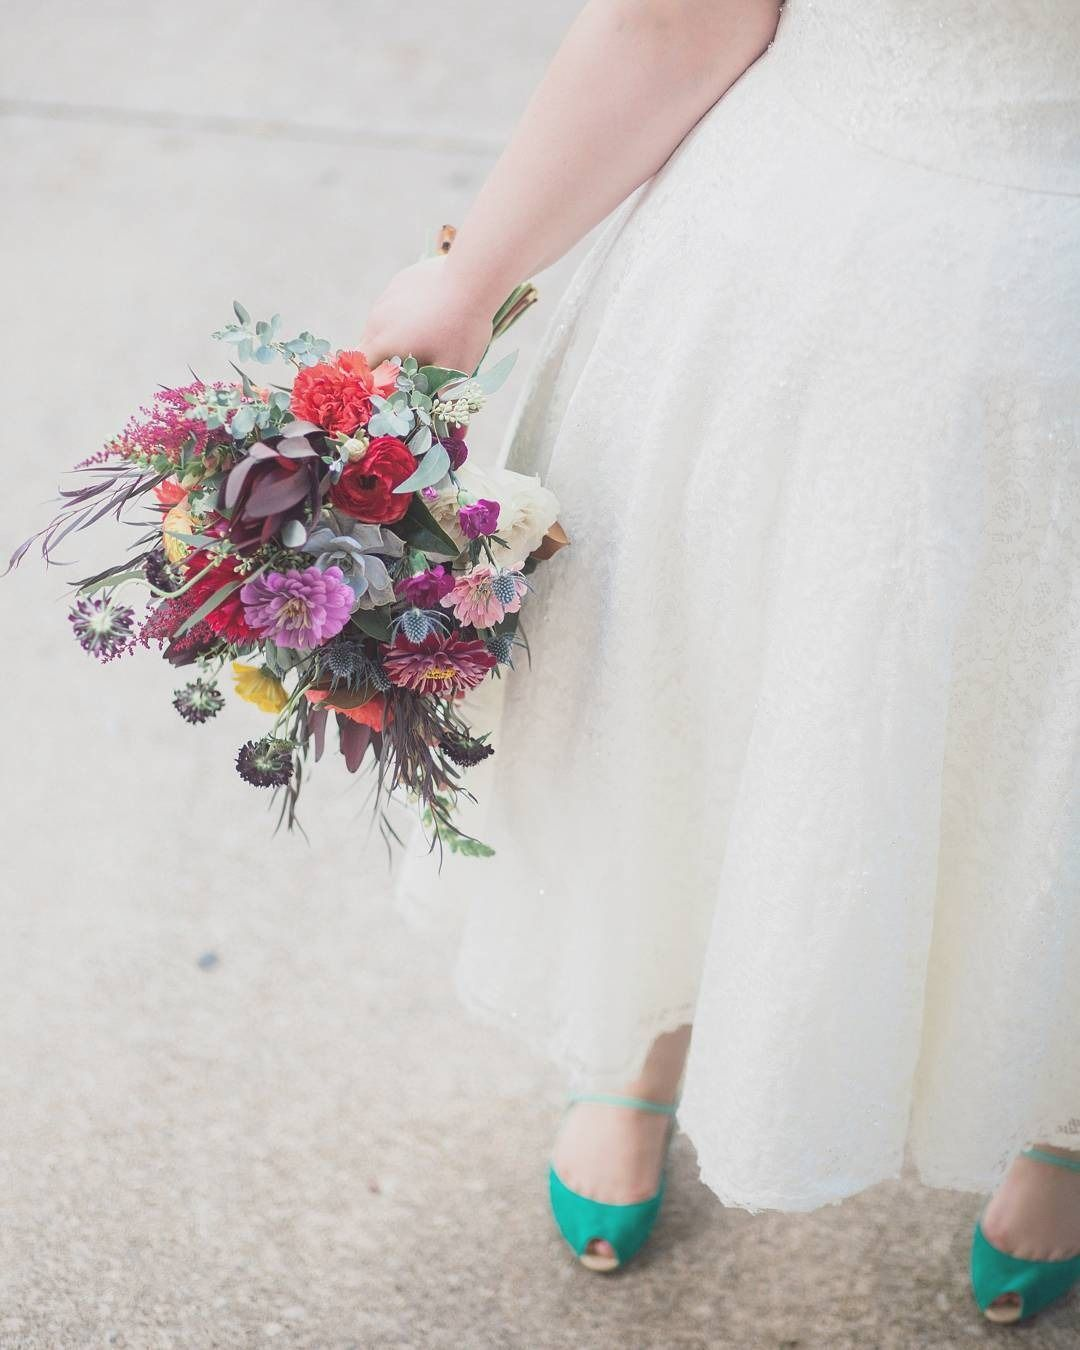 b3f1dedb741 Tea-Length Plus Size Wedding Dress with Shrug with wildflowers and a pop of  green! Photo by Krista Turner